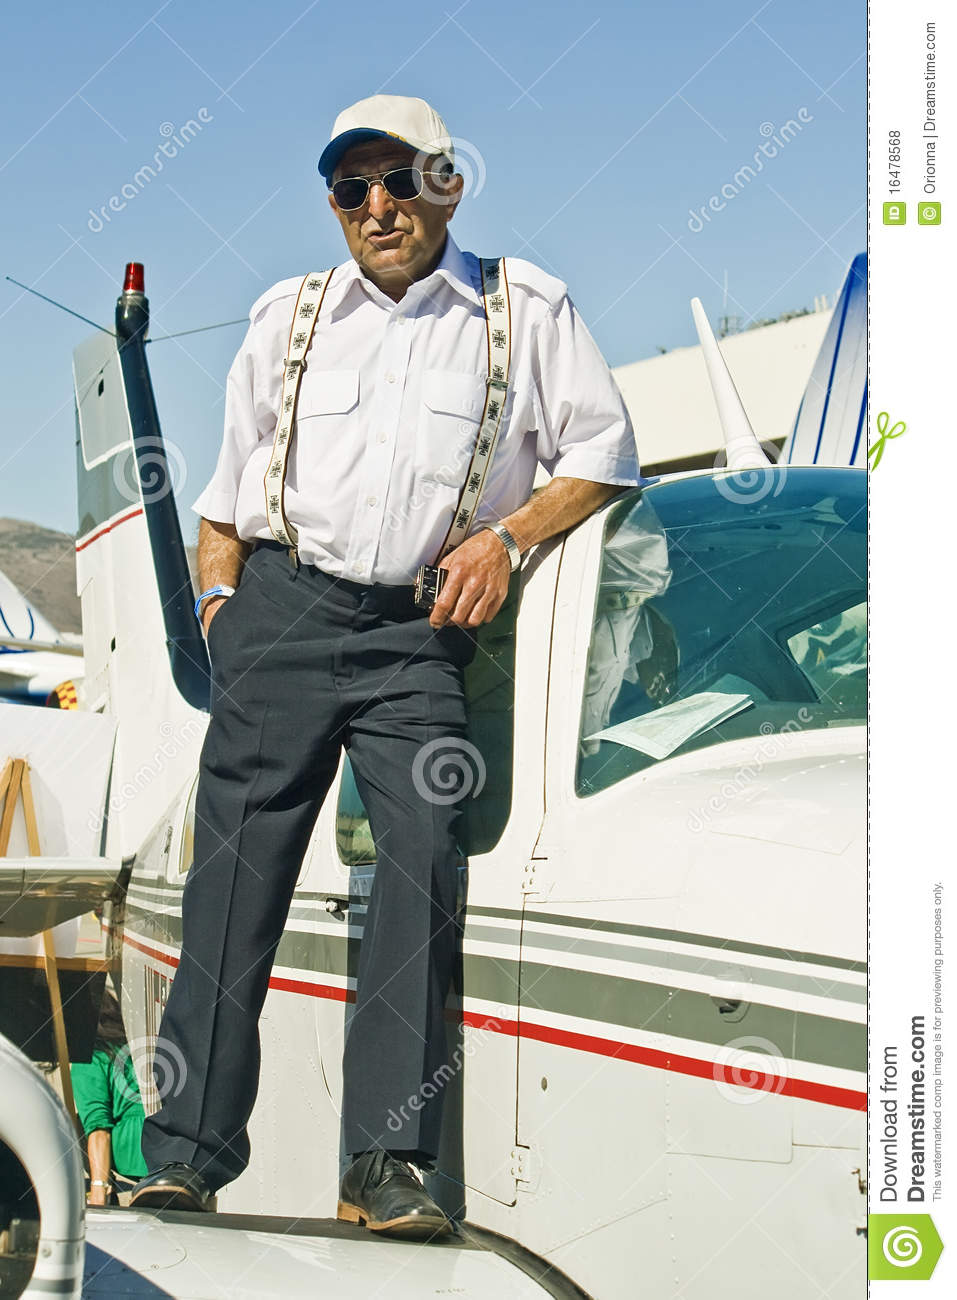 An old pilot on the plane wing